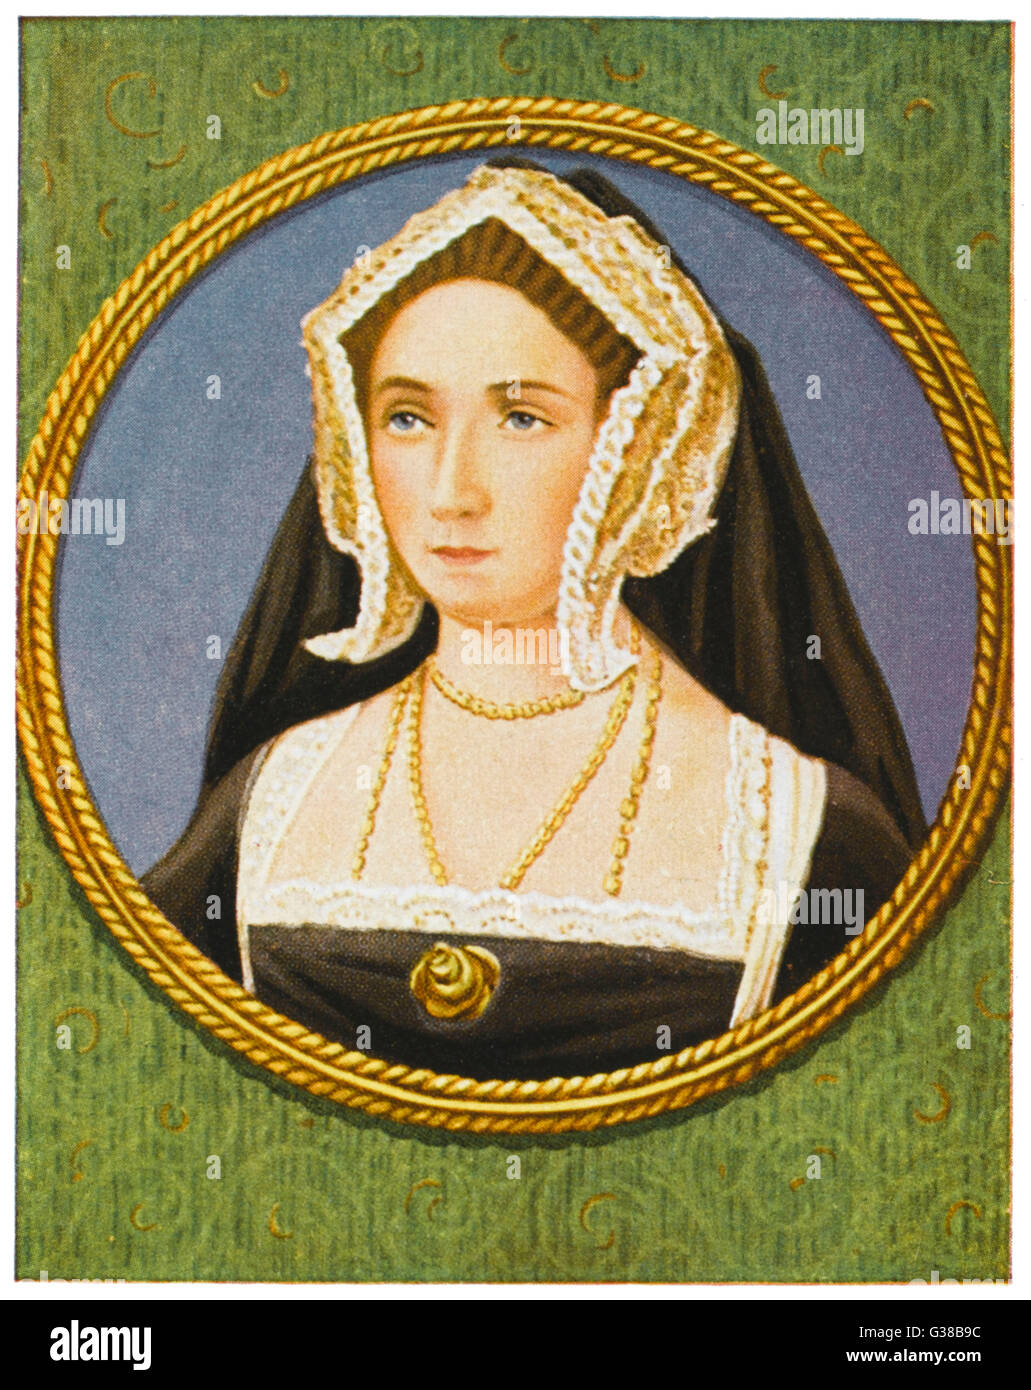 JANE SEYMOUR  3rd wife of Henry VIII; died in childbirth; mother of Edward VI      Date: 1509 - 1537 - Stock Image